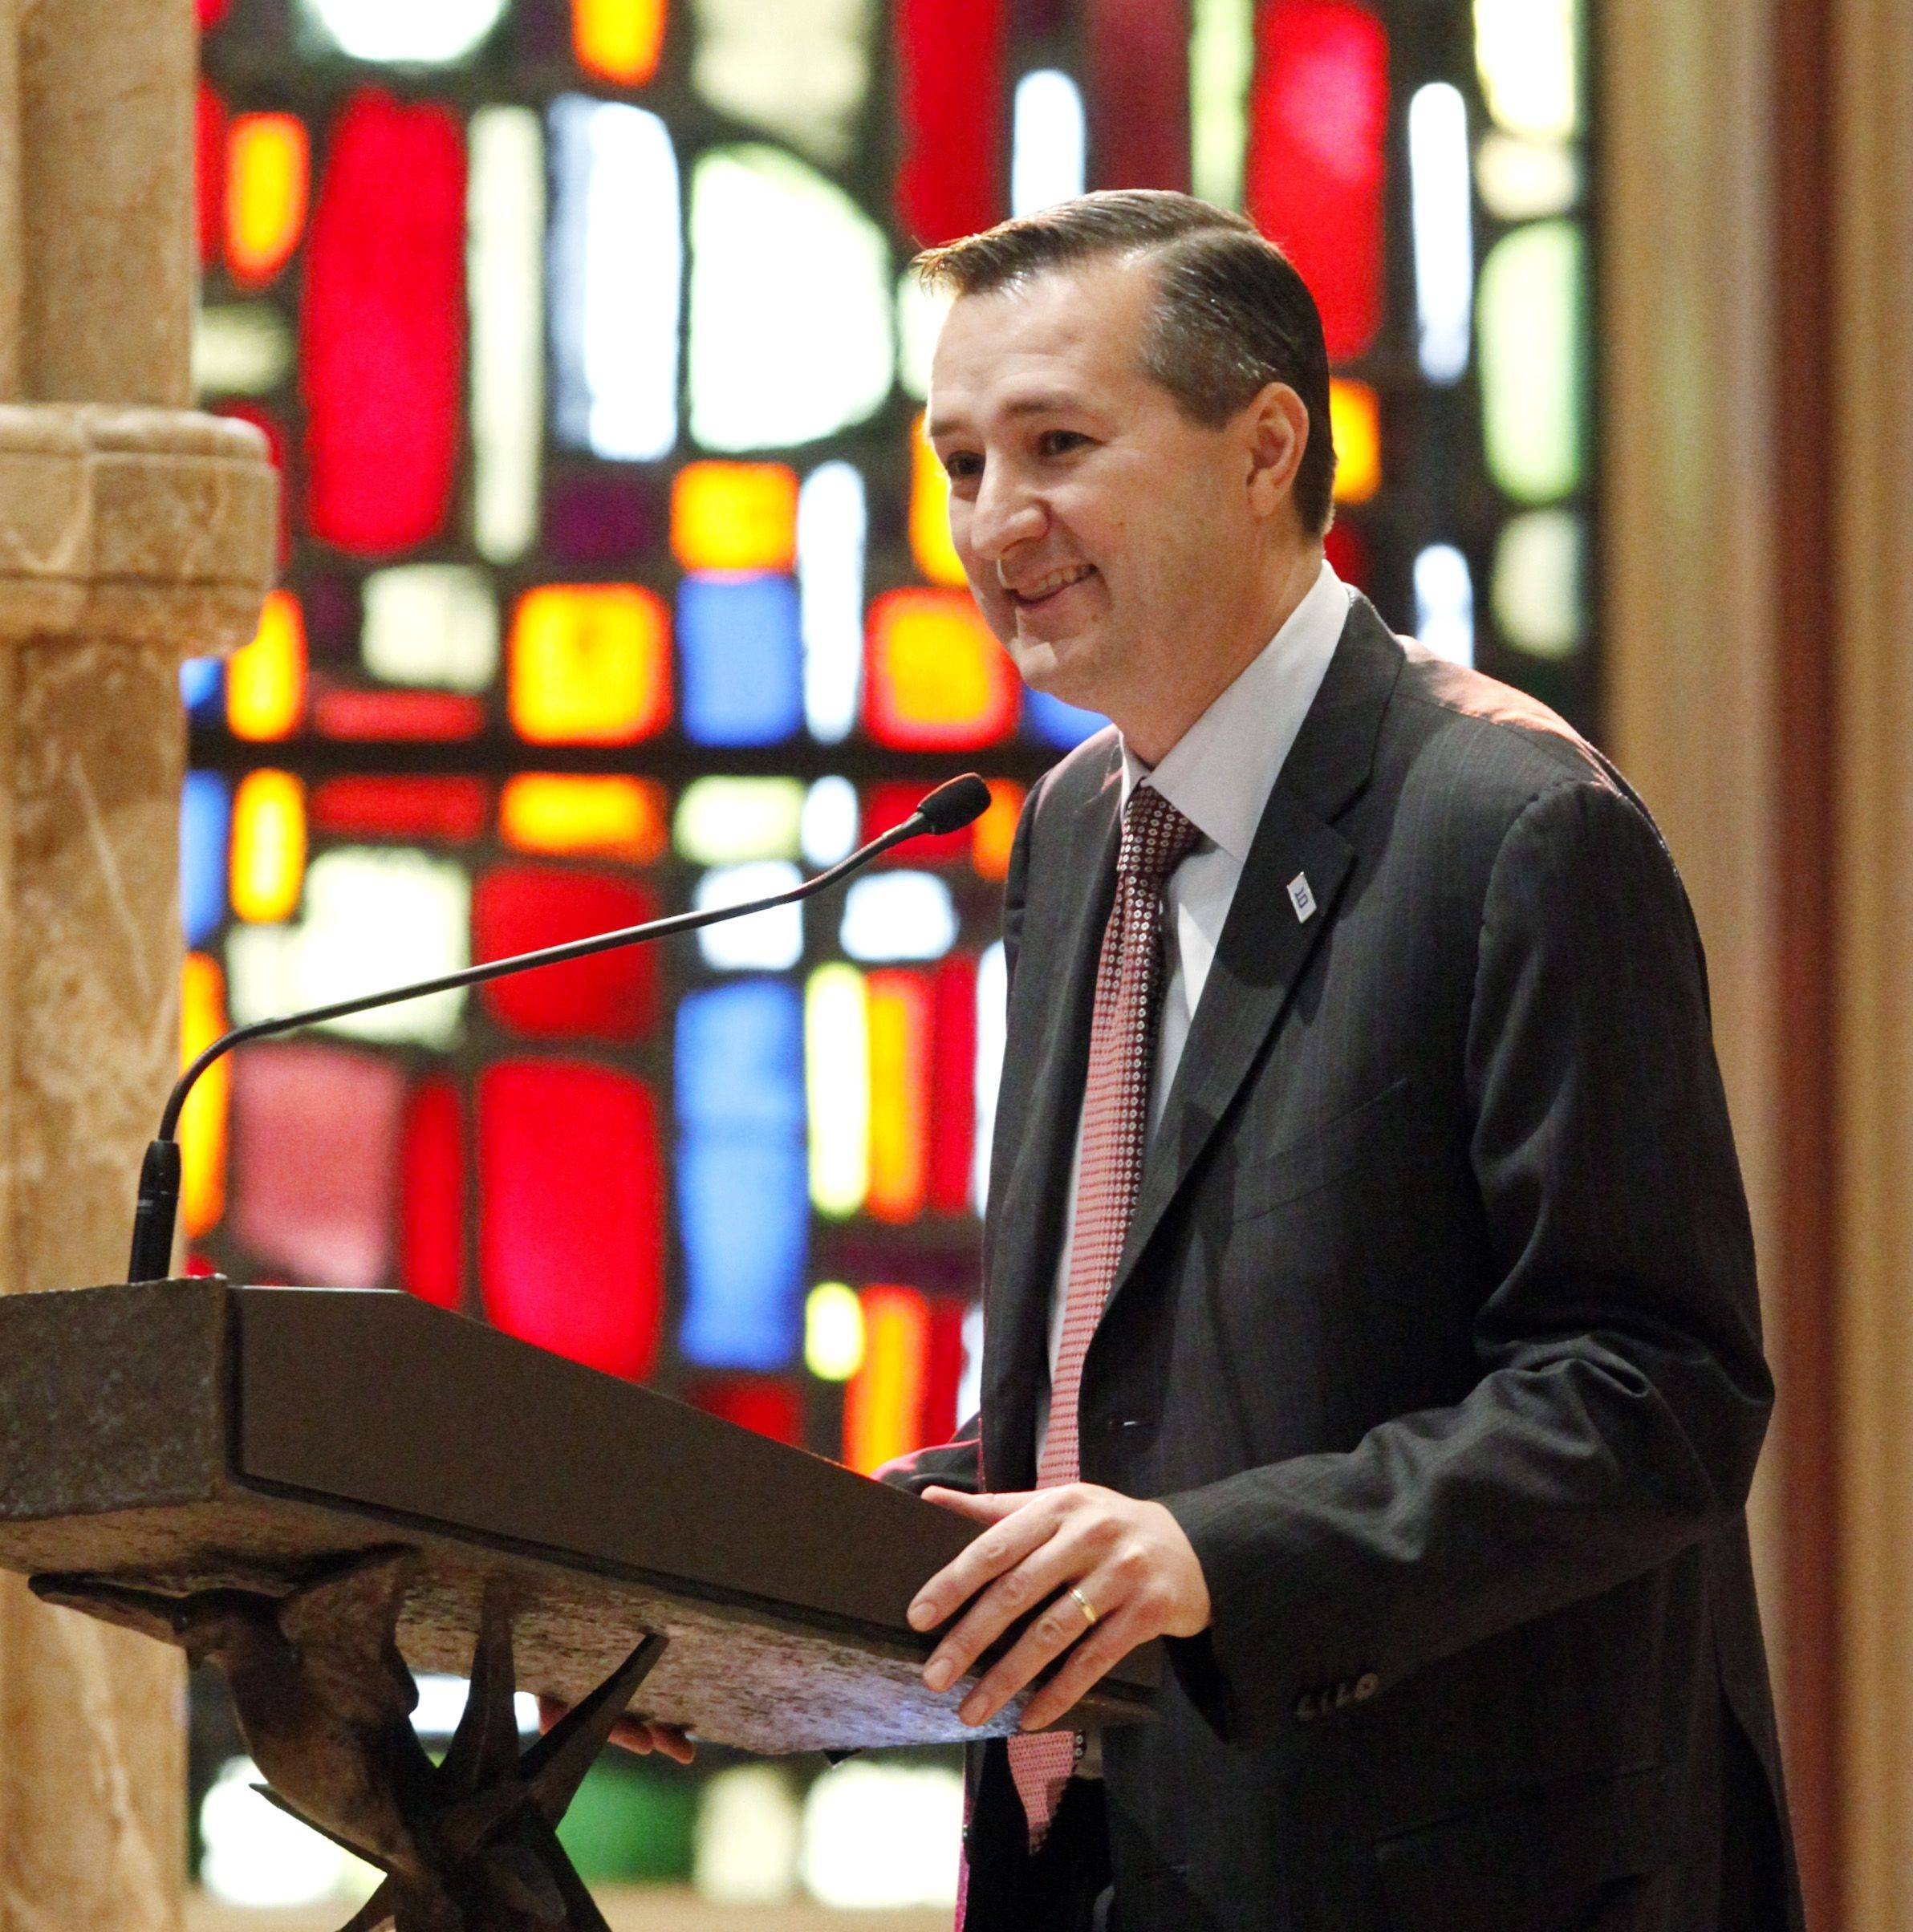 Tom Ricketts, Chairman of the Chicago Cubs, eulogizes legendary Cubs' third baseman Ron Santo during funeral services at Holy Name Cathedral.